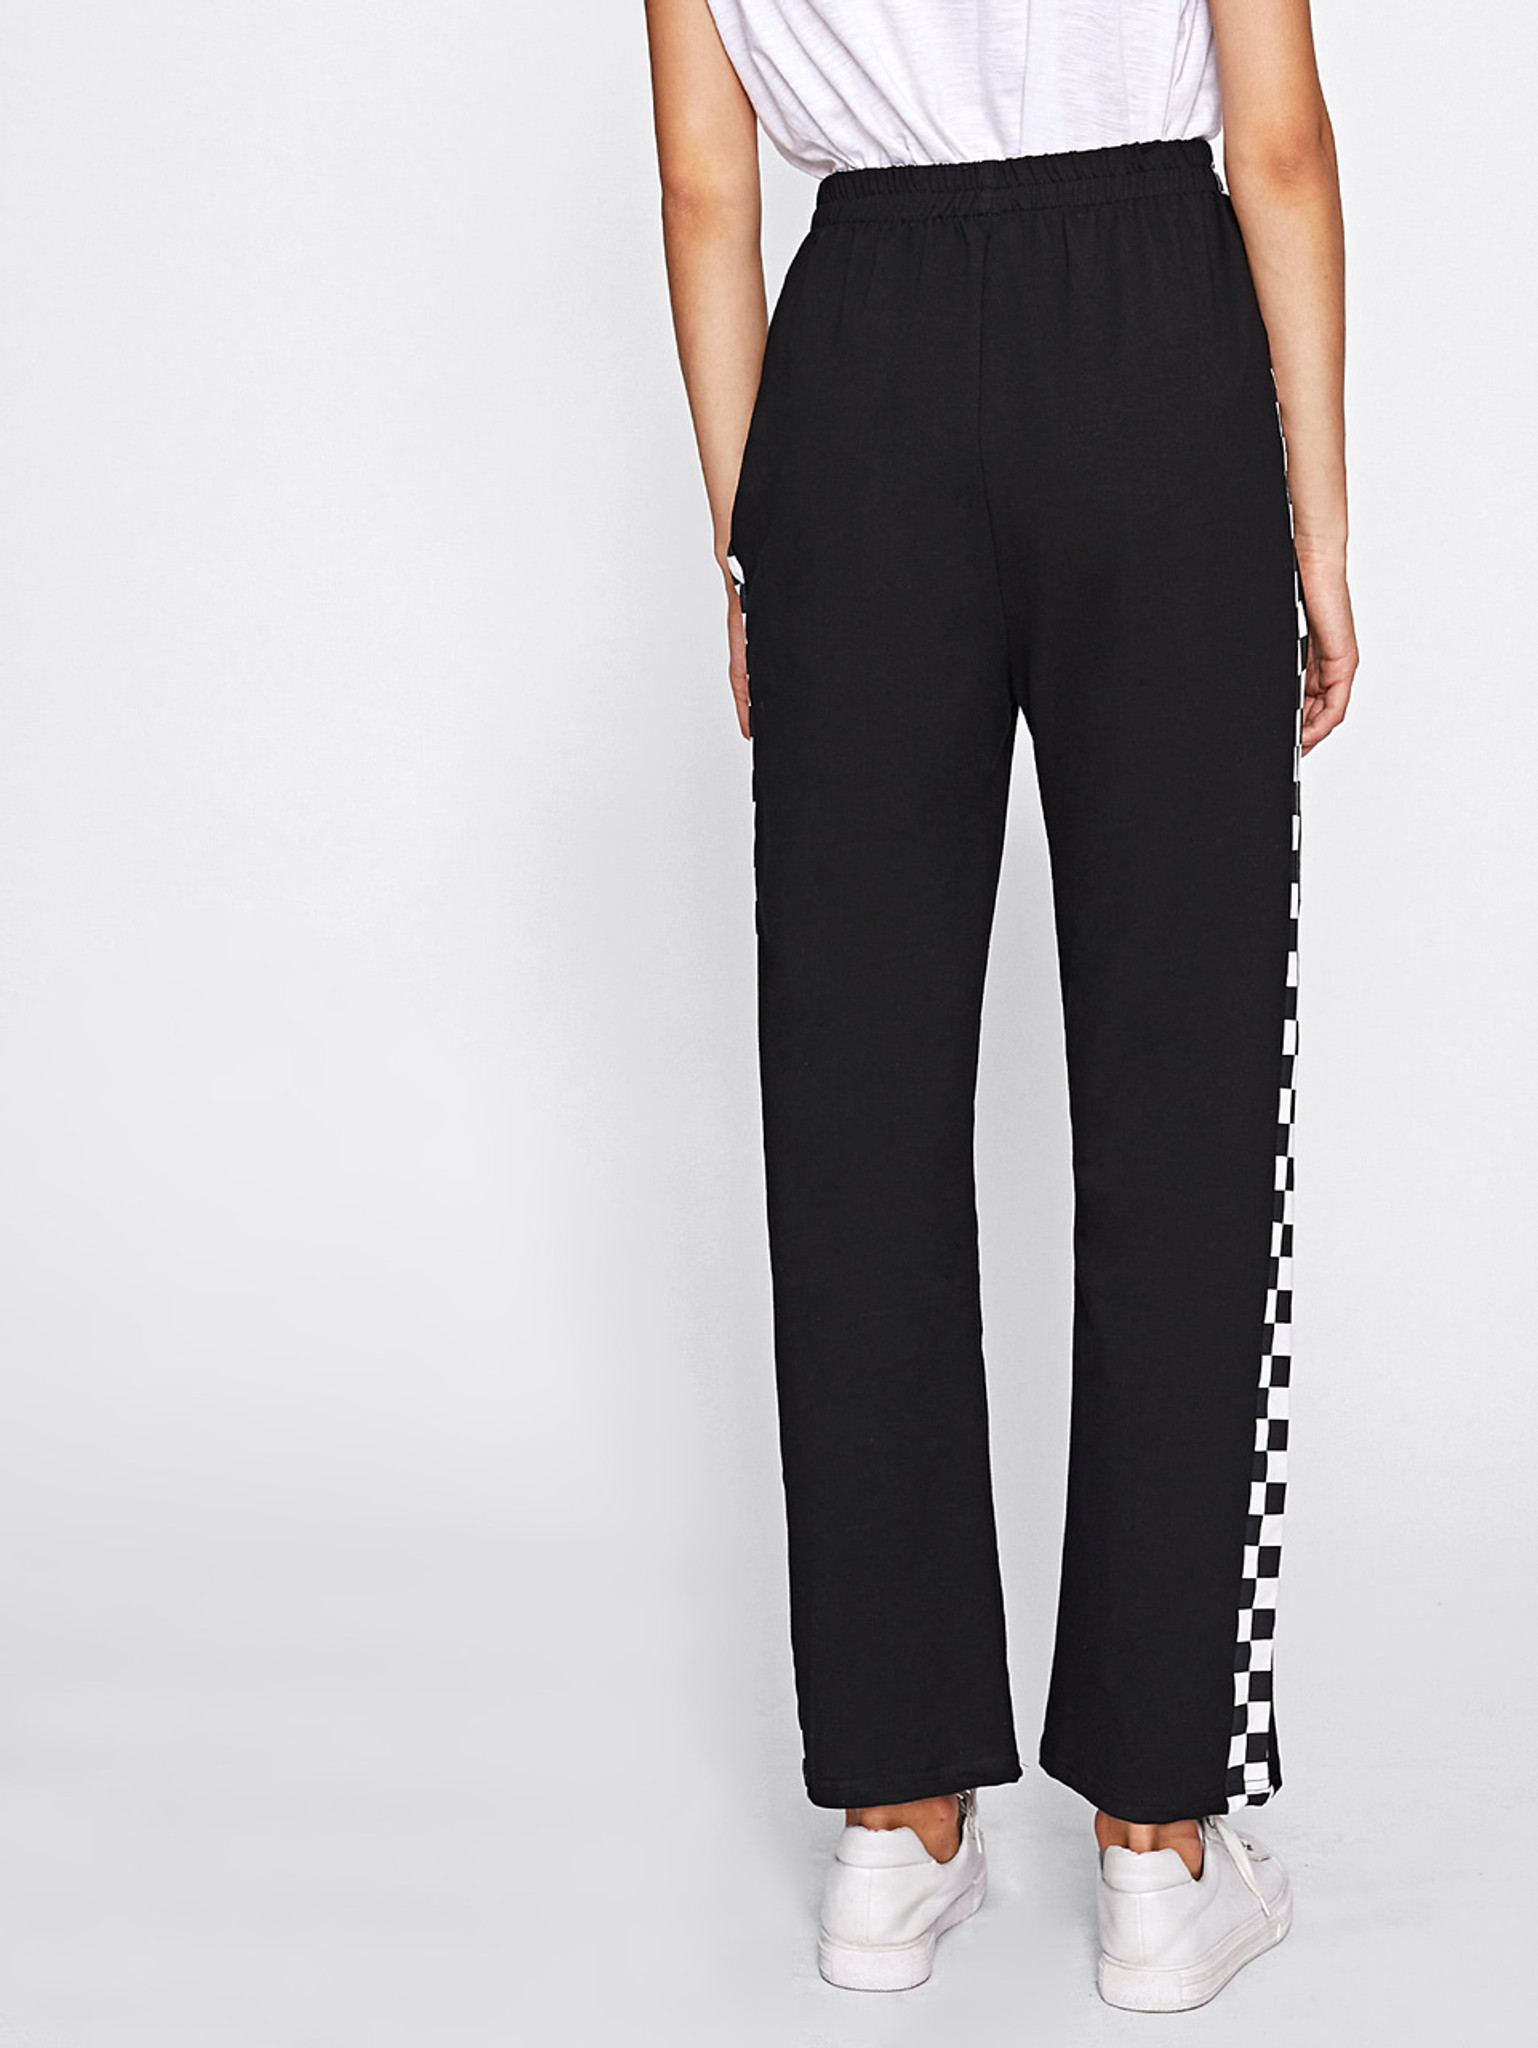 Fifth Avenue Womens Checkered Panel Pants